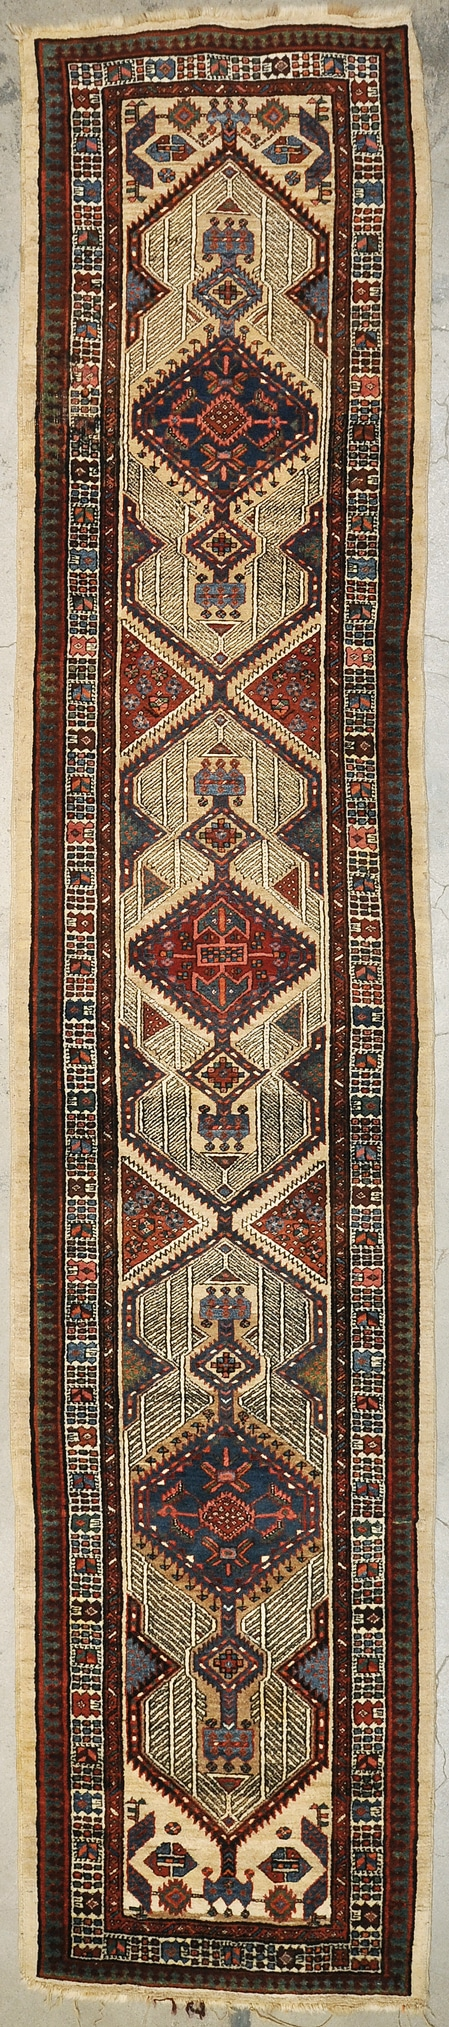 Antique Serab Runner rugs and more oriental carpet 33619-